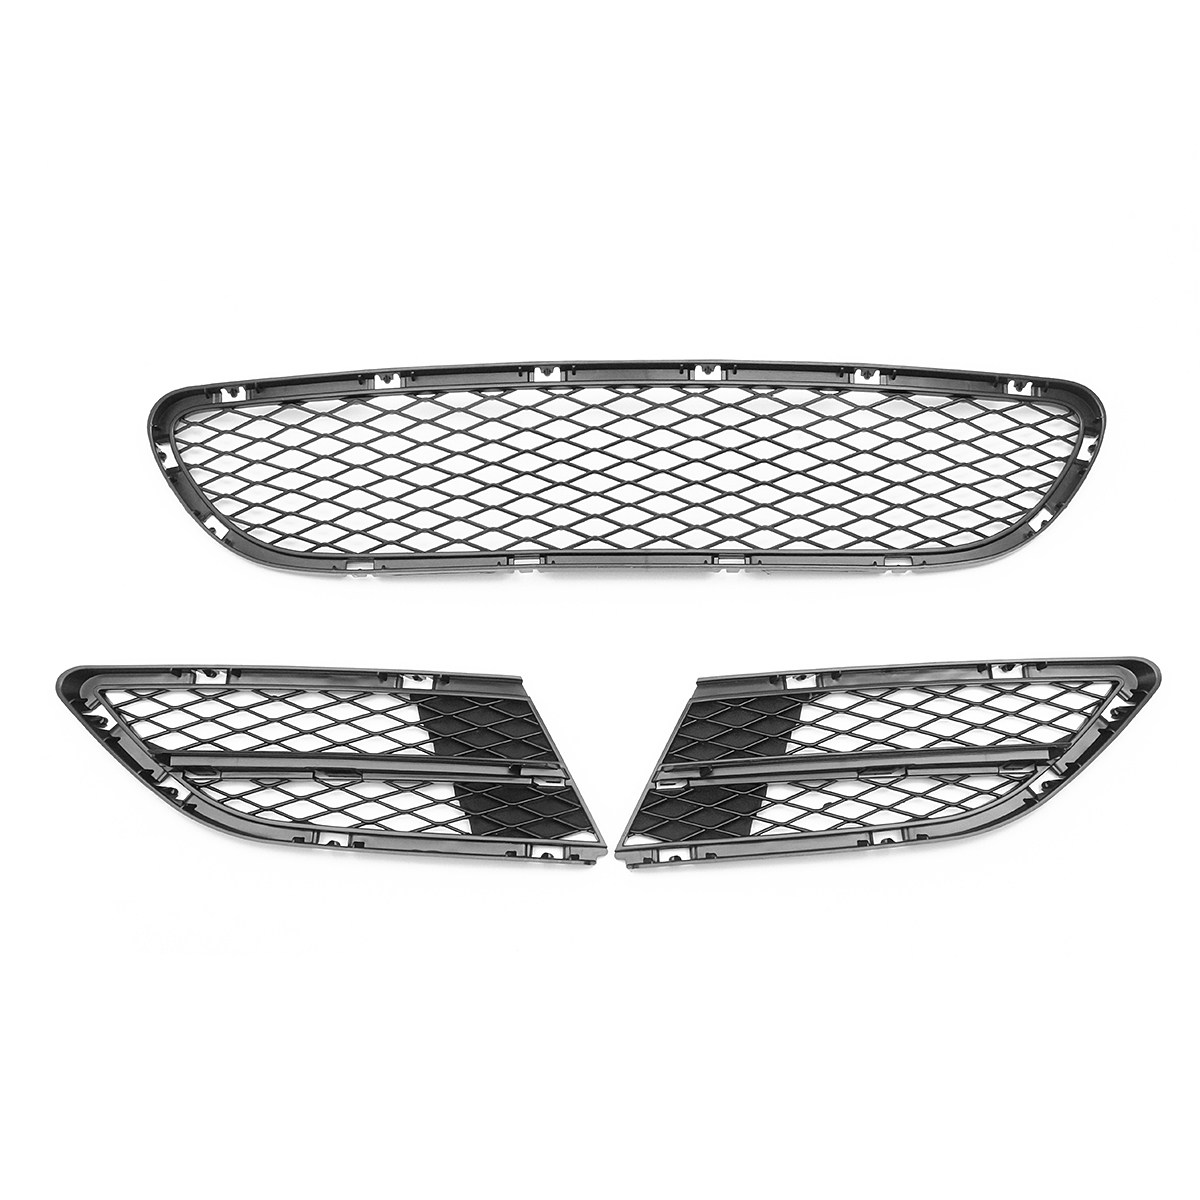 Front Bumper Vents Front Lower Grille Grill Net Fit For BMW 3 Series E90 E91 325i 328i 335i